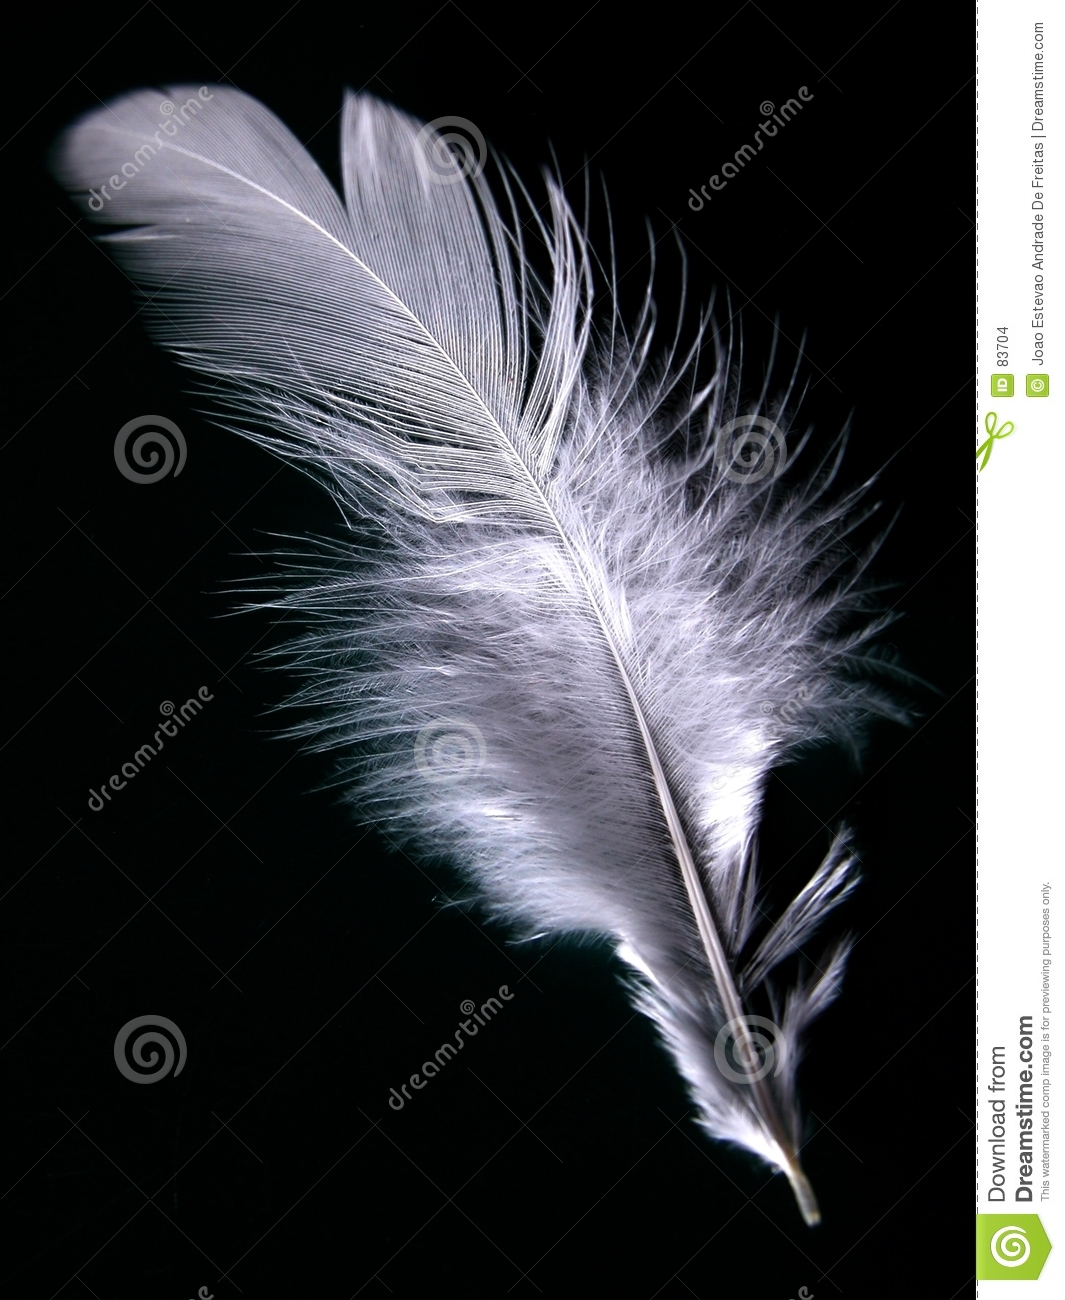 Feather of my chicken